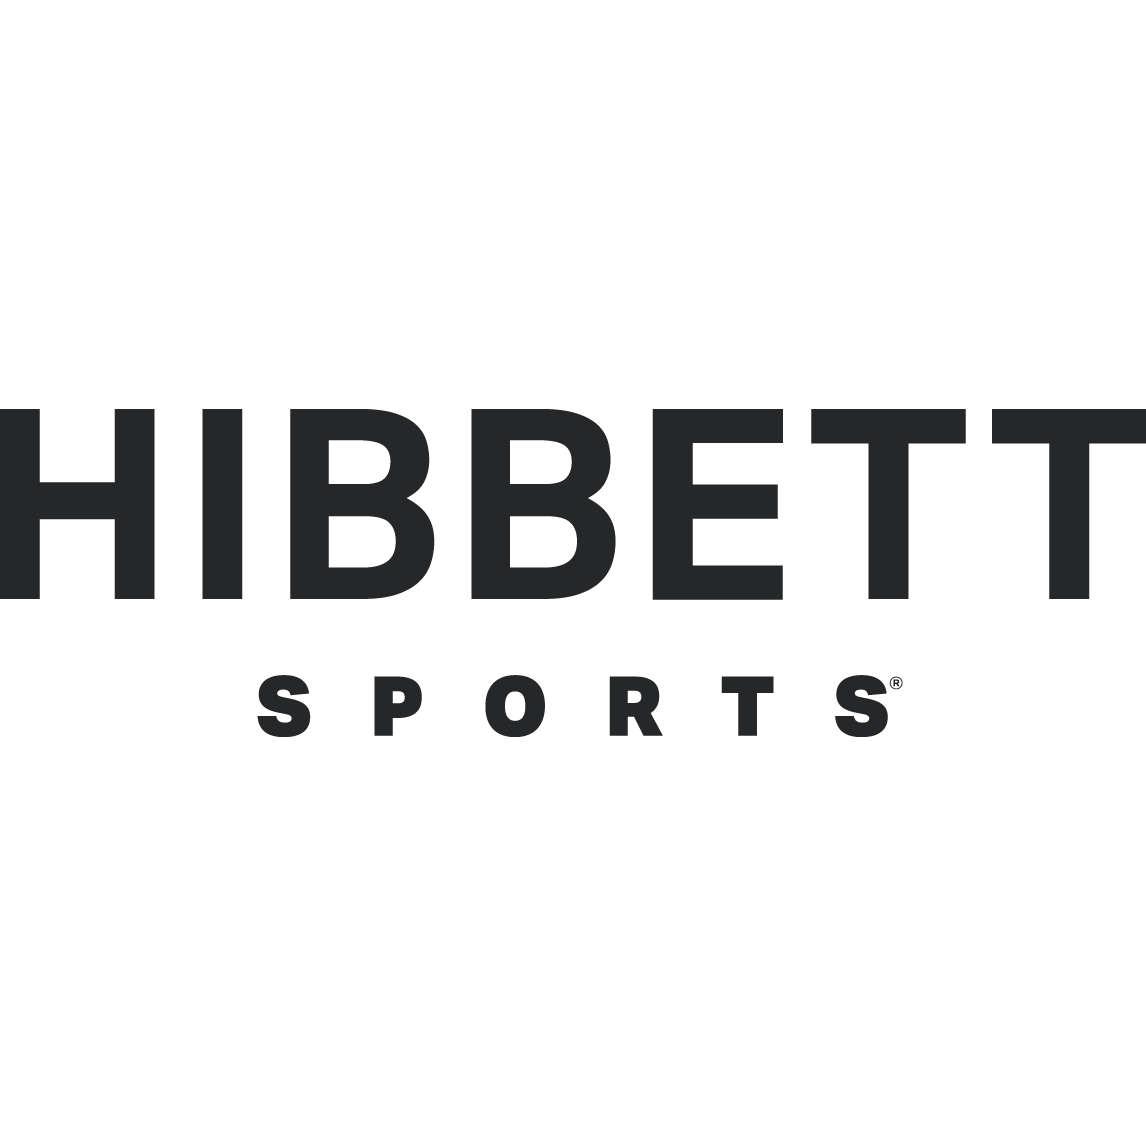 Hibbett Sports - Hiram, GA - Shoes